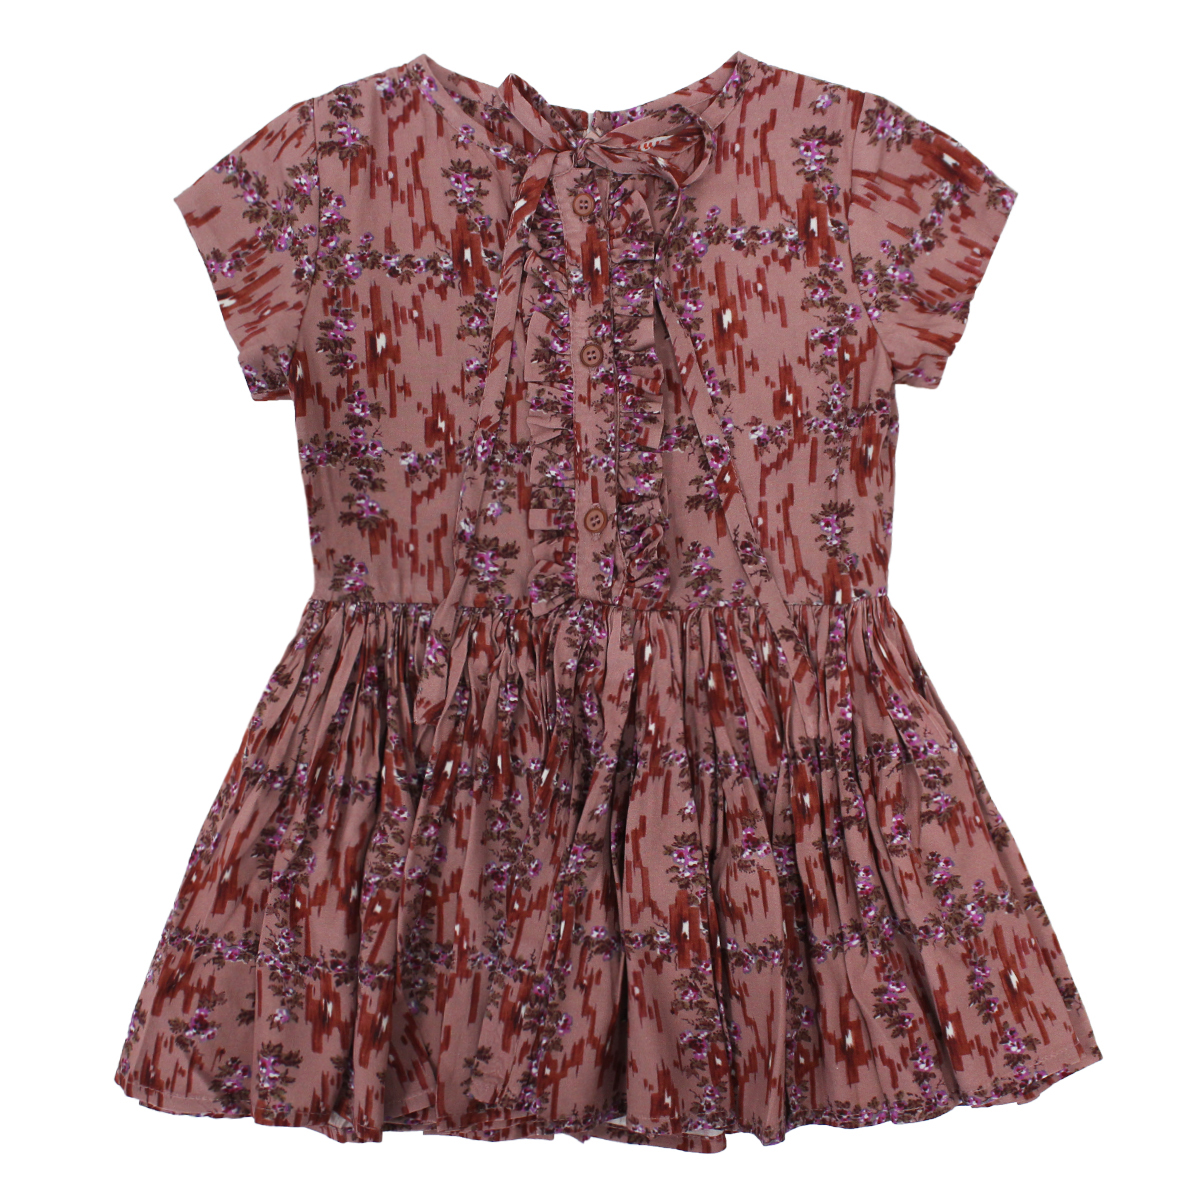 Morley Ernestine Dress in Ikat Brick Print